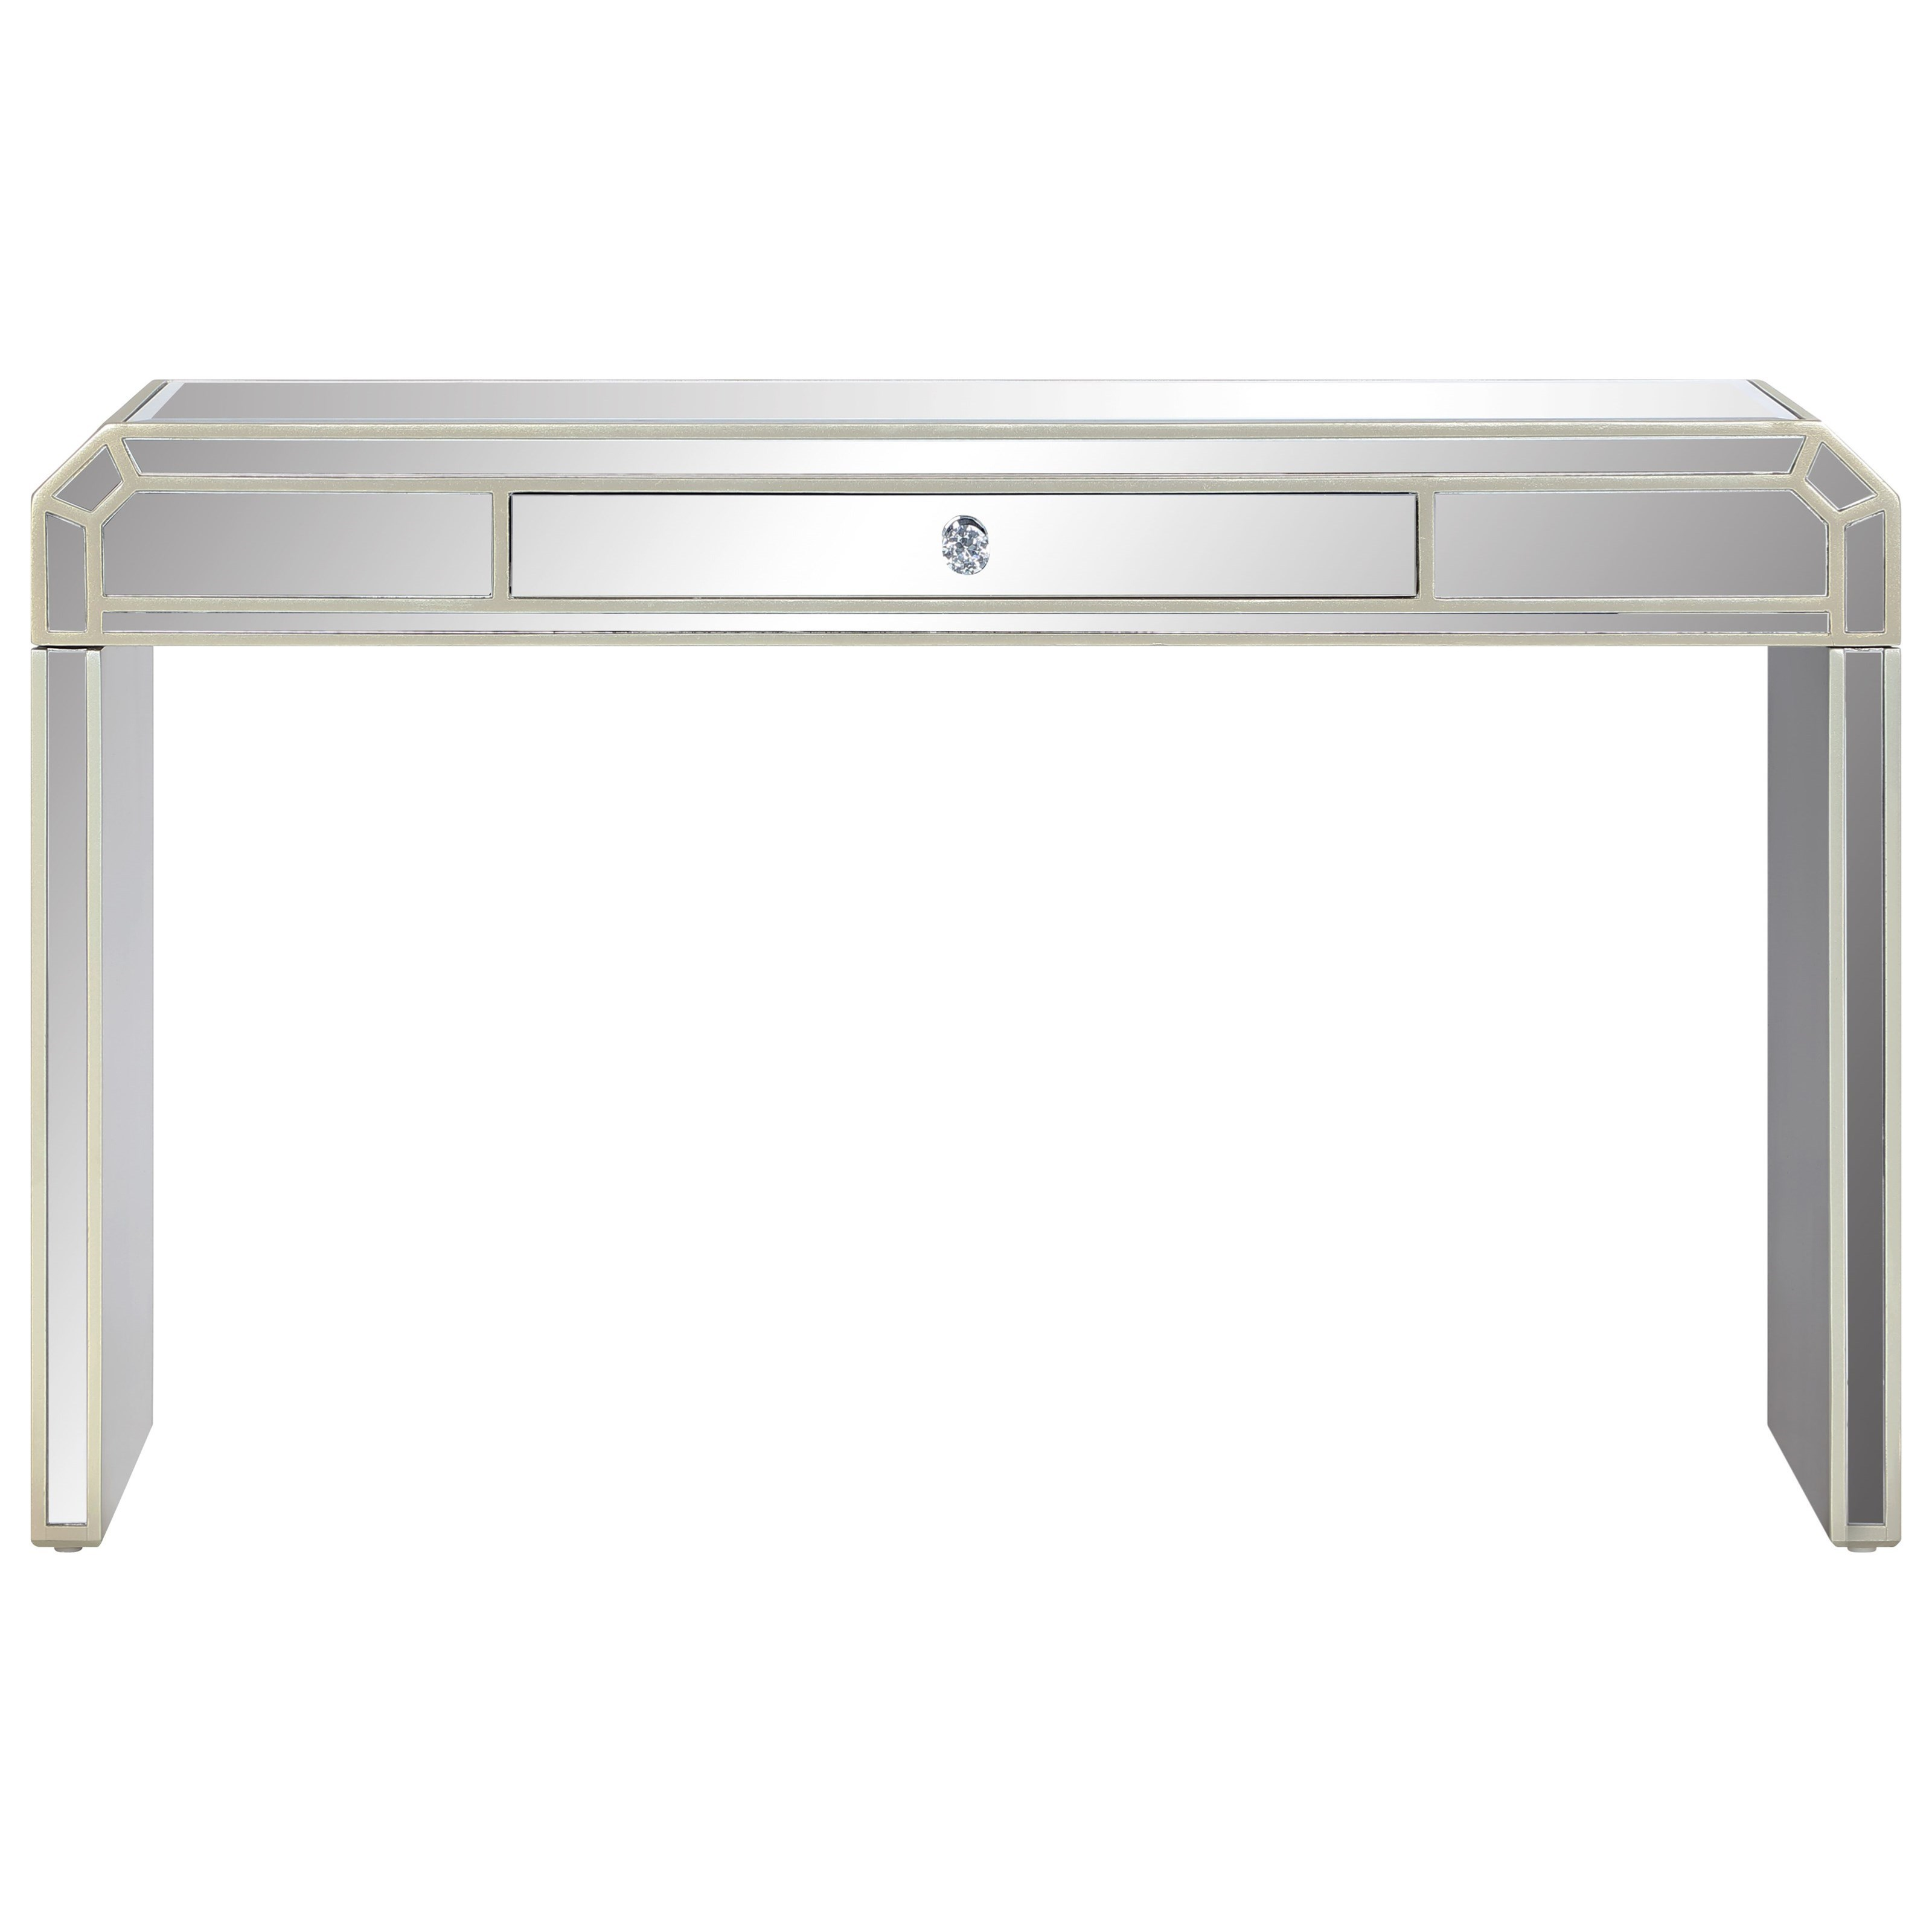 1-Drawer Console Table